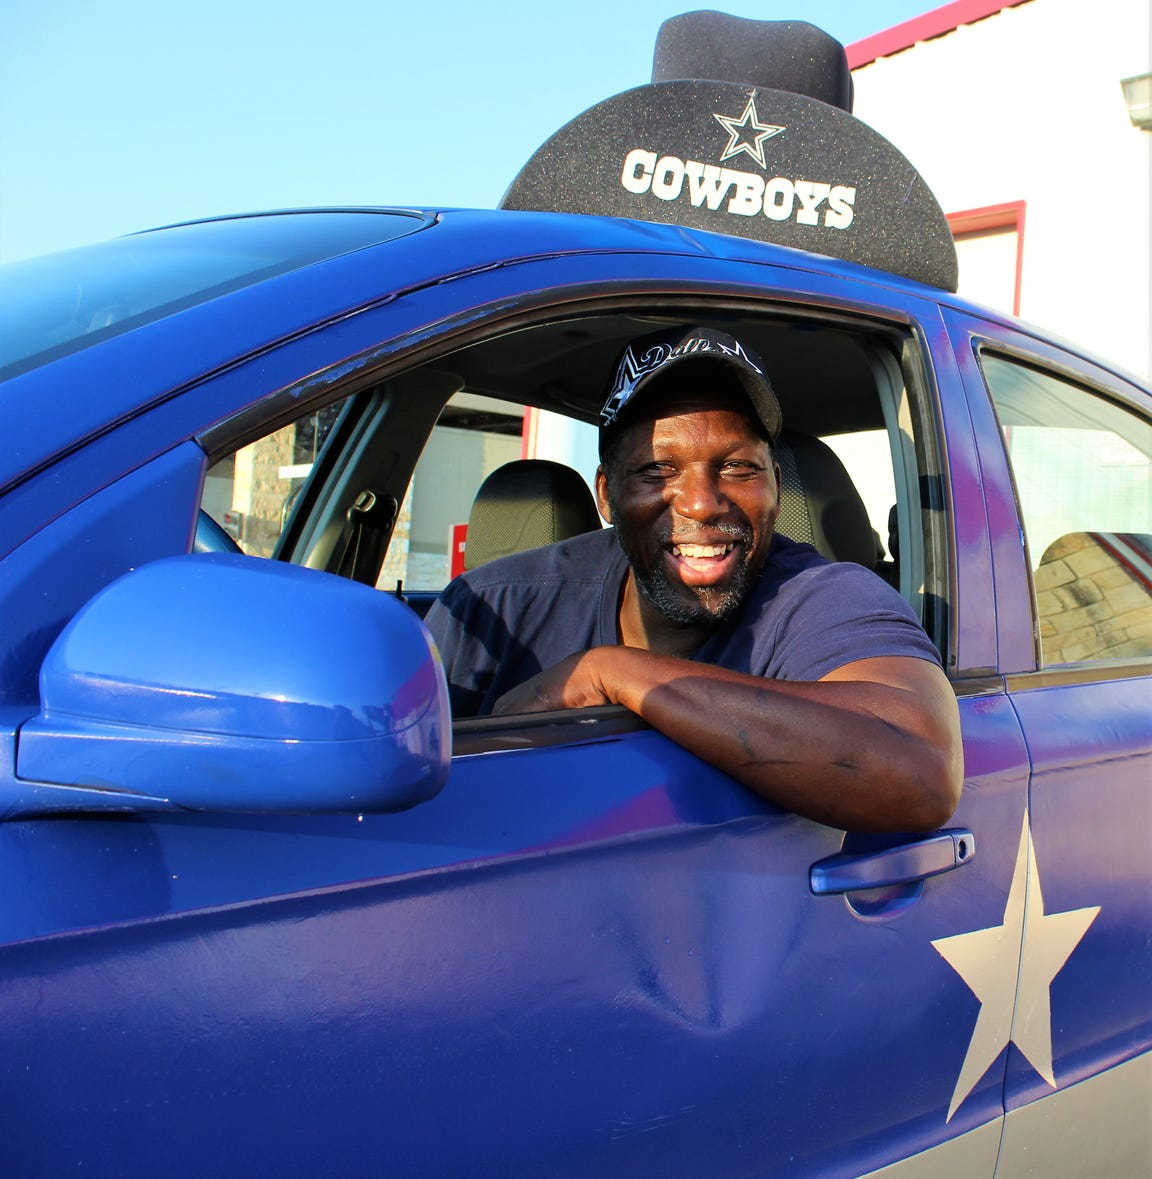 Frank Early will have his Star Car fueled and ready for a road trip to see his favorite team, the Dallas Cowboys, host the Green Bay Packers this season.